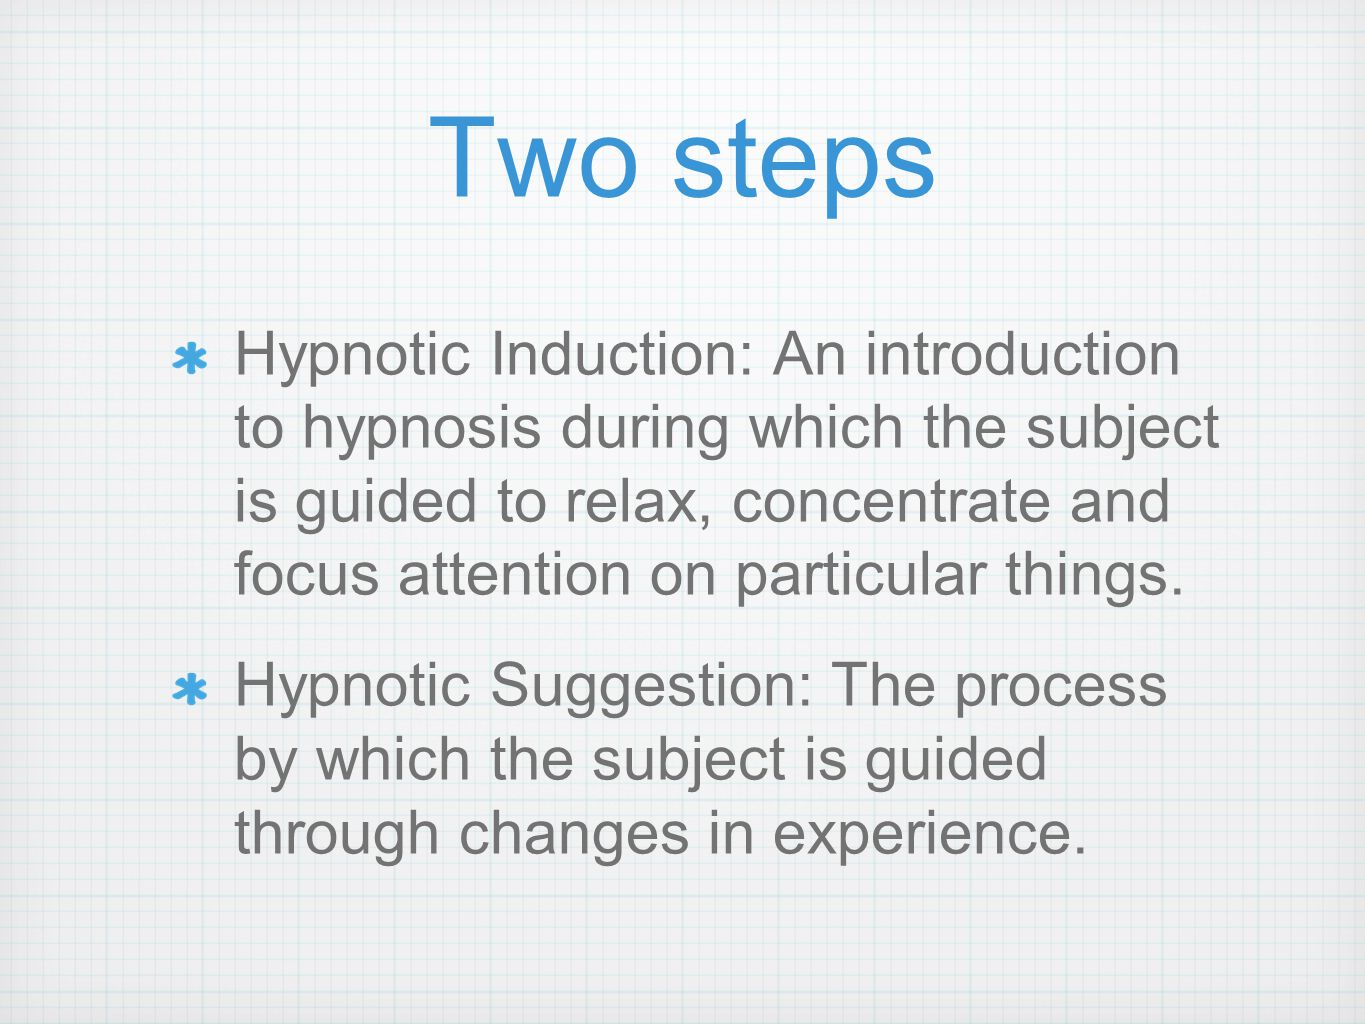 Two steps Hypnotic Induction: An introduction to hypnosis during which the subject is guided to relax, concentrate and focus attention on particular things.